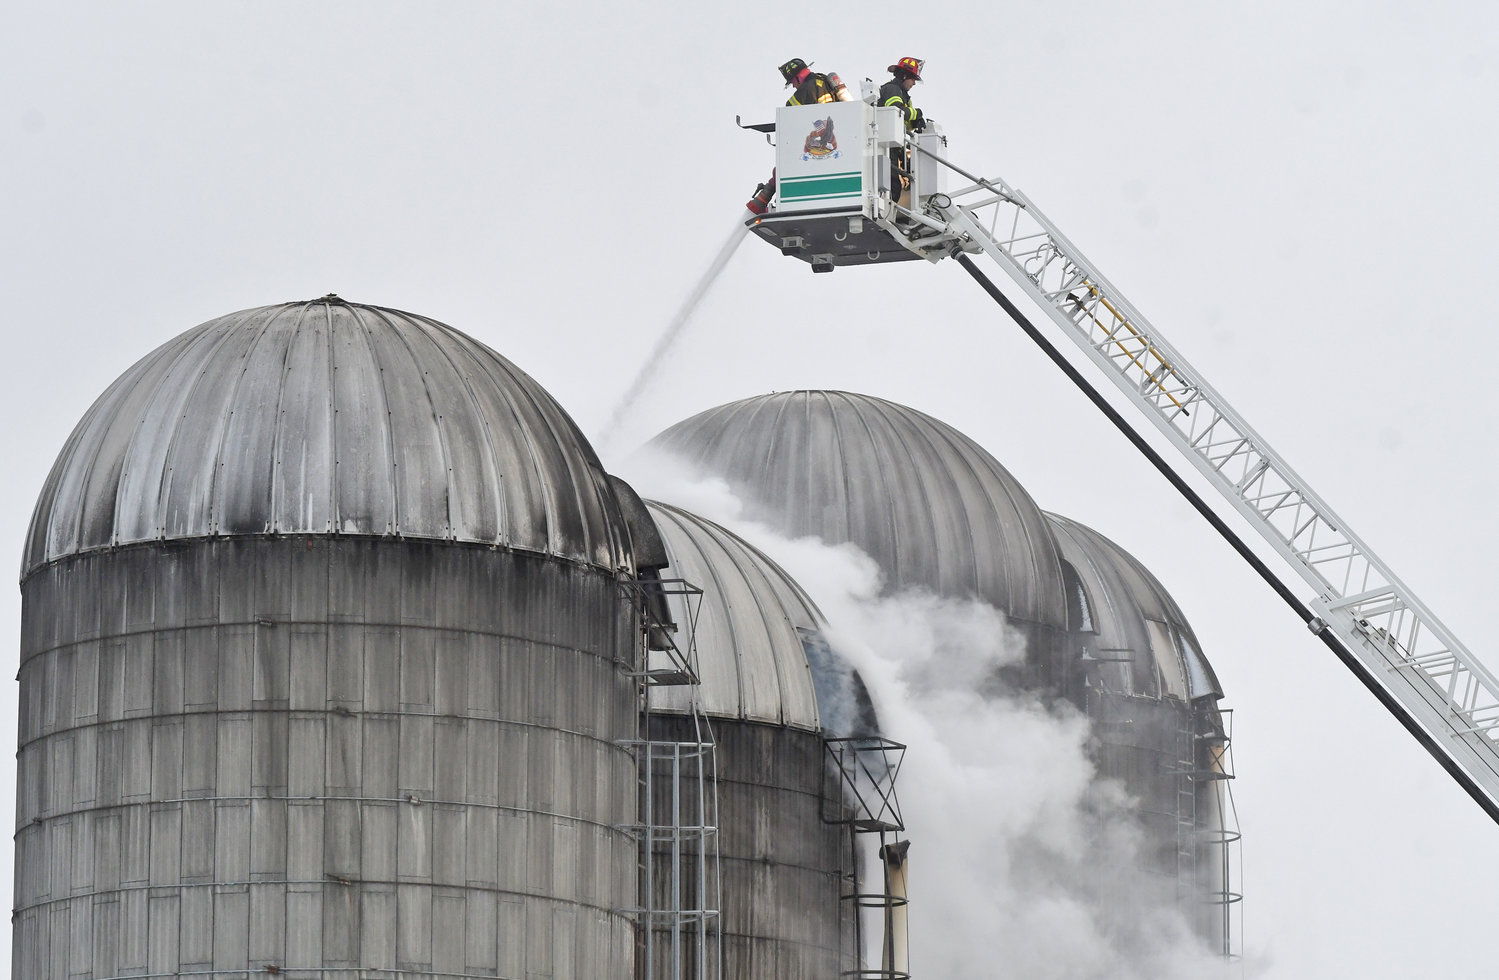 DOWN INSIDE — Firefighters in a ladder truck aim their hose line down into a silo on Whittaker Road in Trenton this morning to douse the burning feed inside. It is the second fire in less than a week for the farm, a barn caught fire from an electrical malfunction on a tractor on Sunday with some 200 head of cattle killed. See story, page 2.